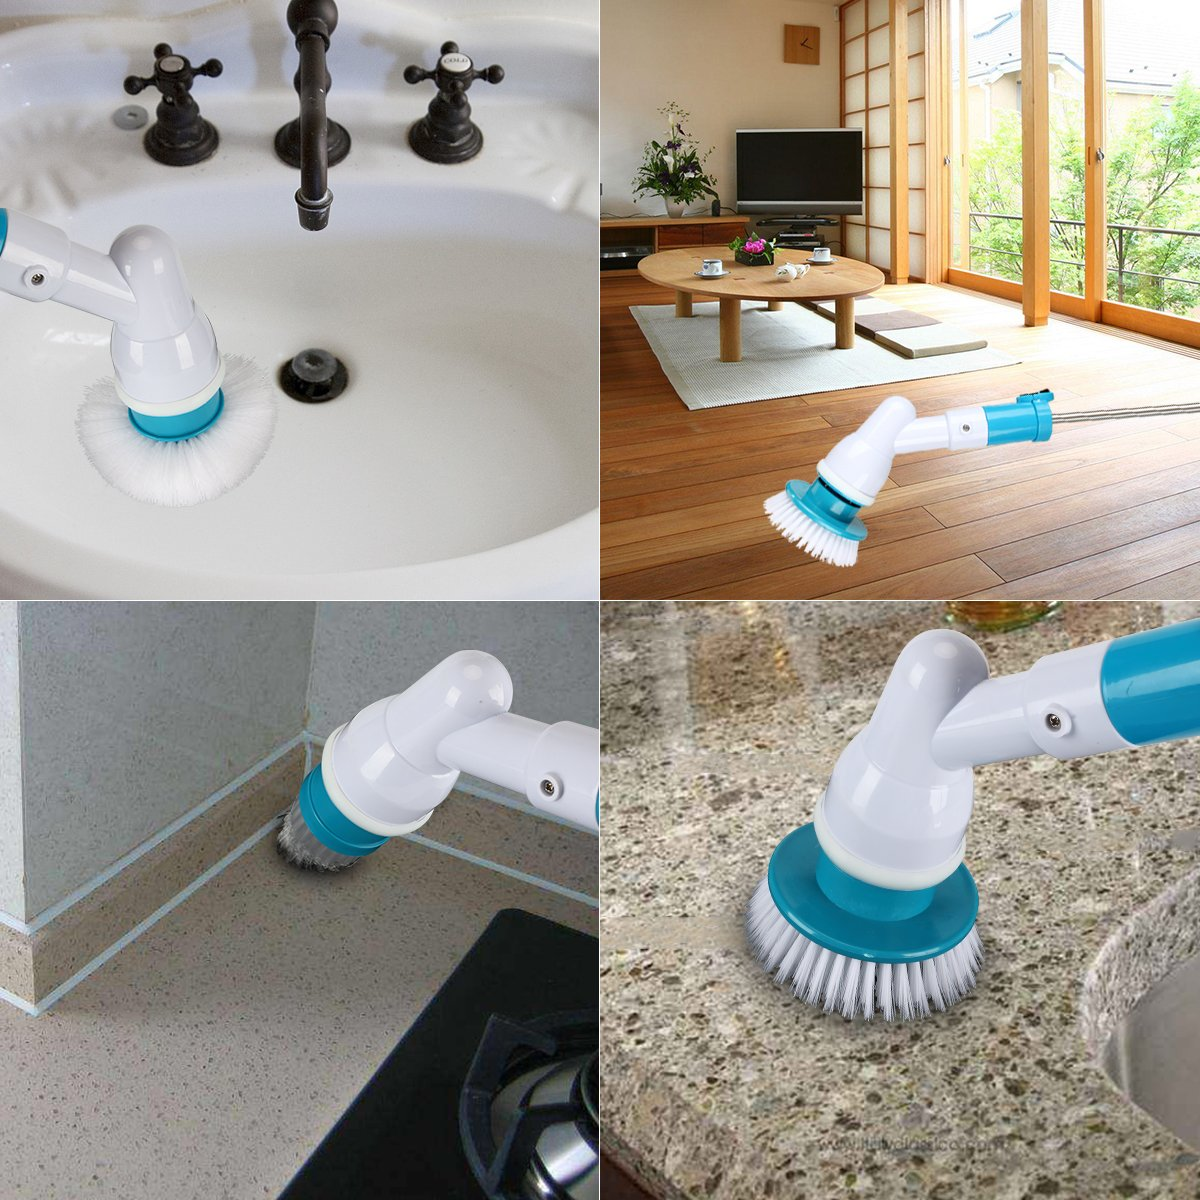 Electric Spin Scrubber 360 Cordless Bathroom Scrubber With 4 Replaceable Cleaning Shower Scrubber Brush Heads Extension Handle For Tub Tile Floor